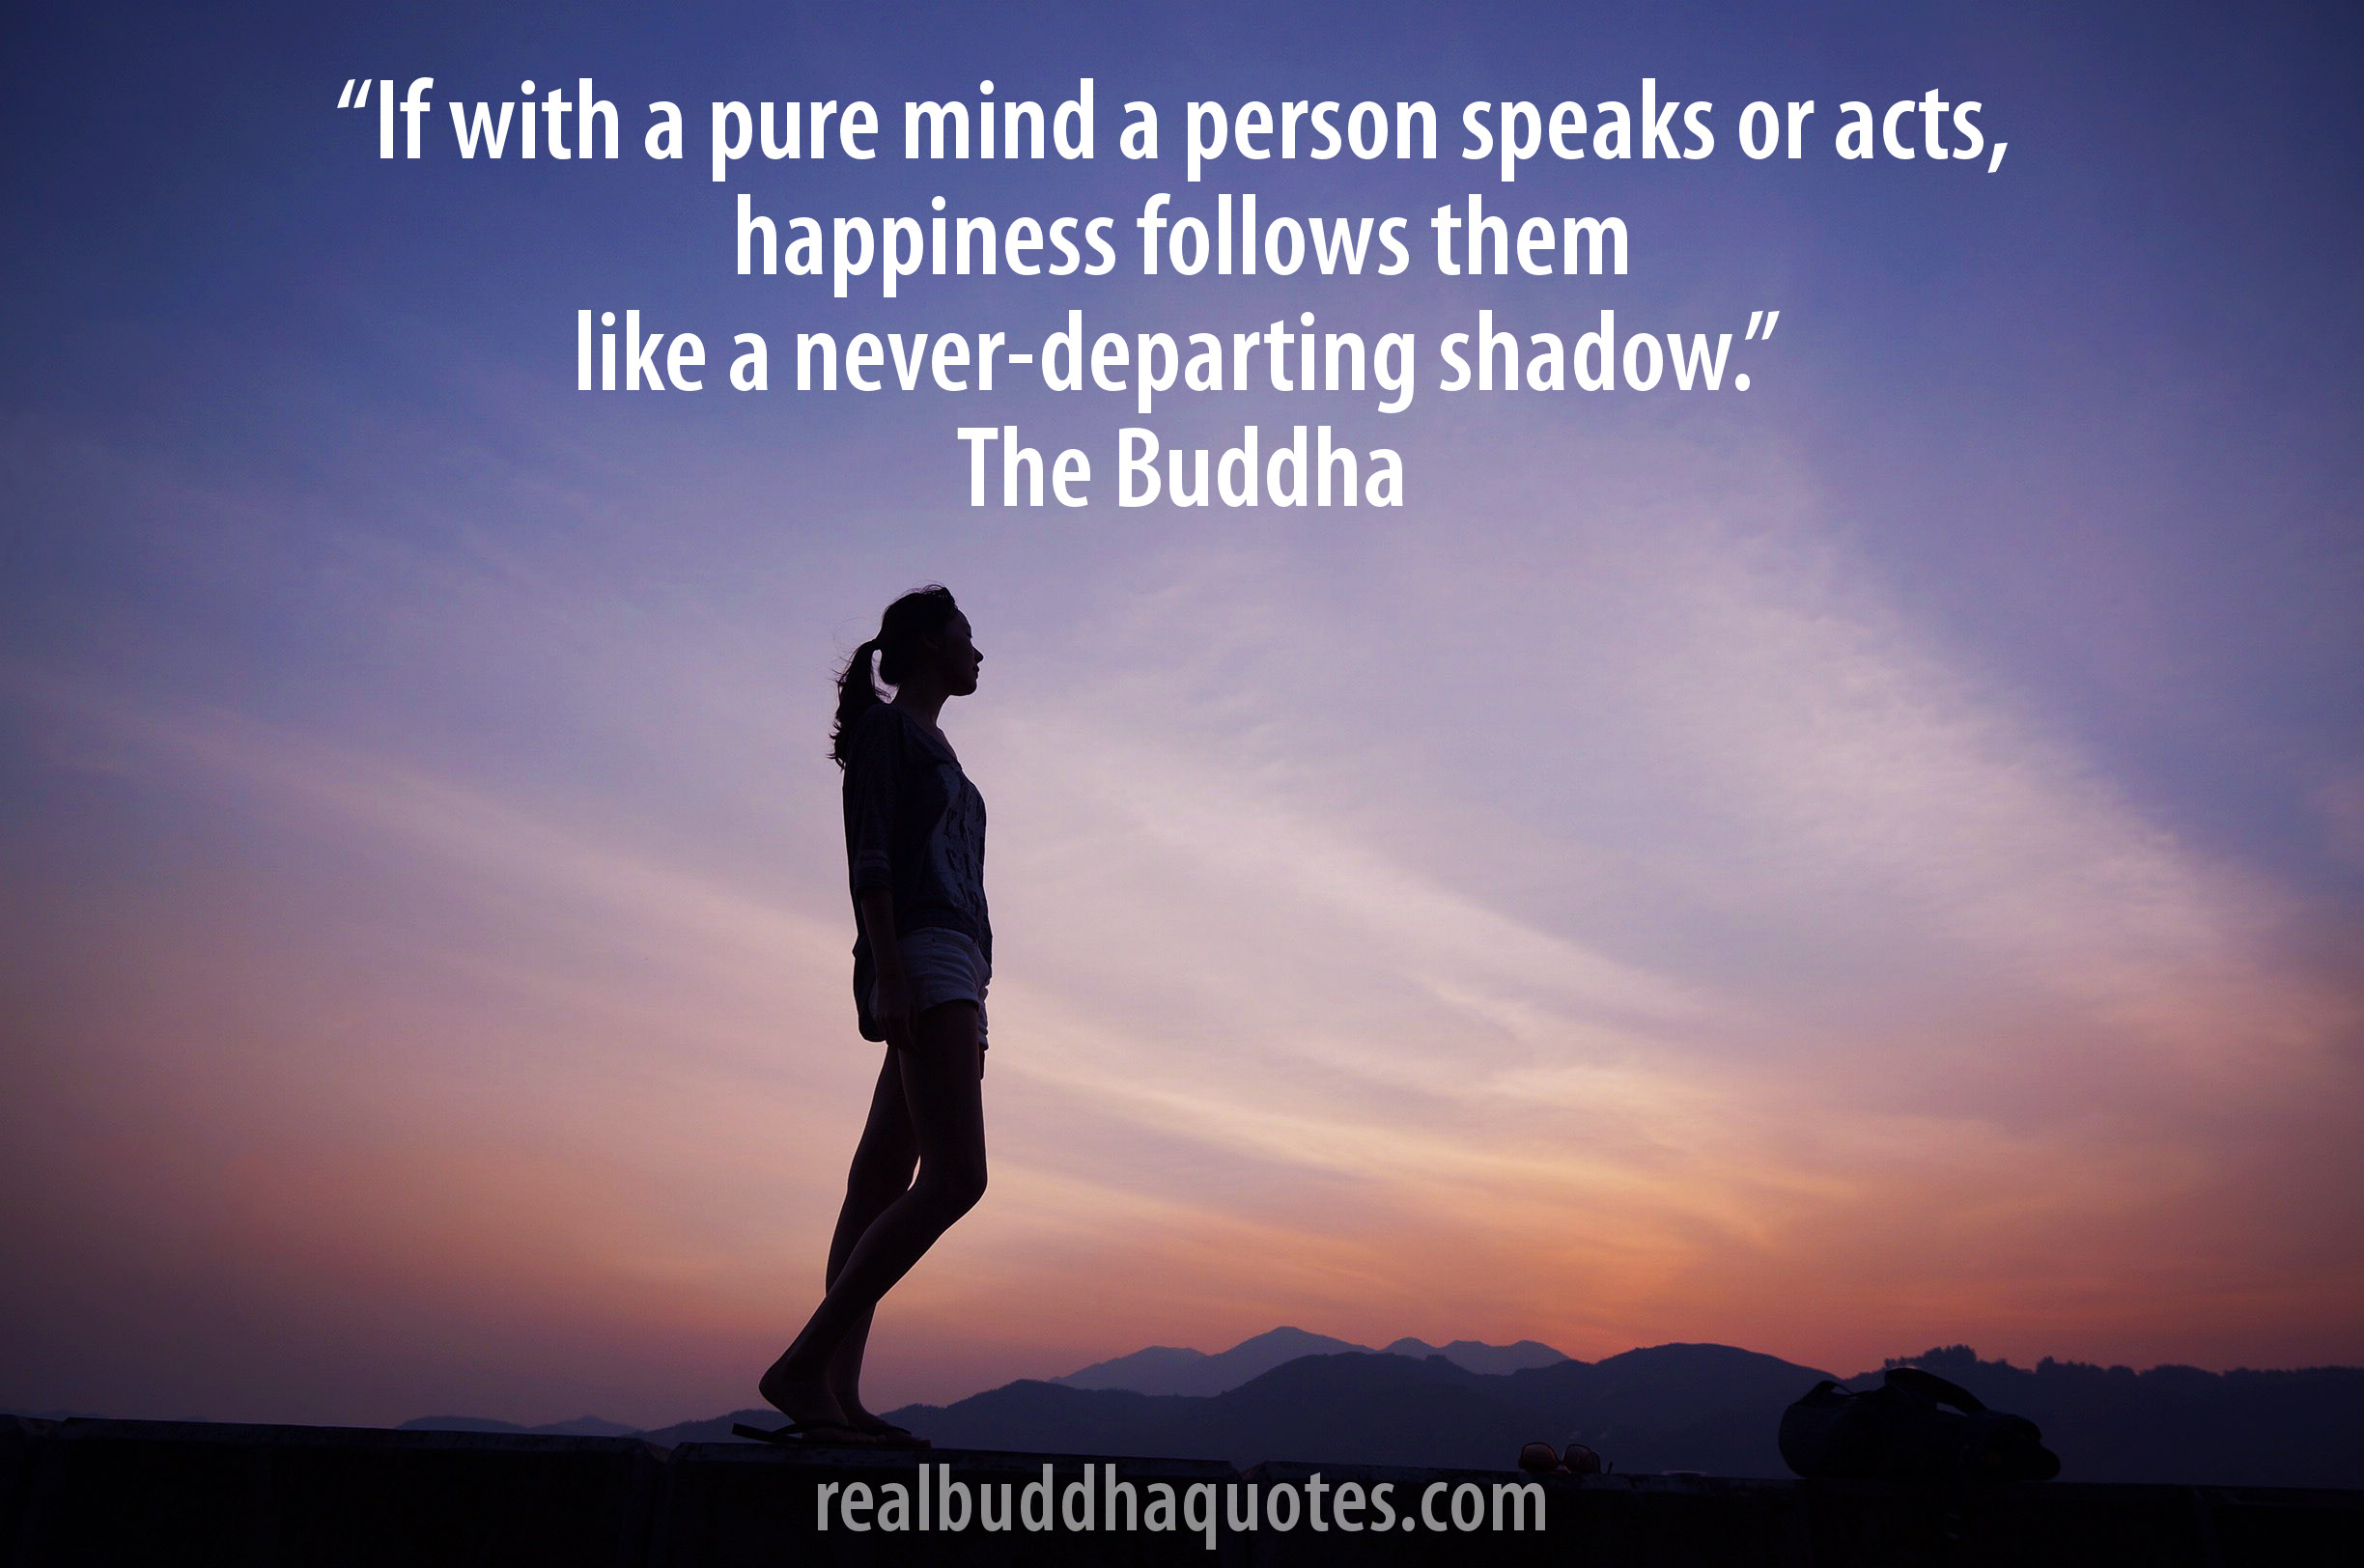 Best Buddha Quotes Real Buddha Quotes  Verified Quotes From The Buddhist Scriptures